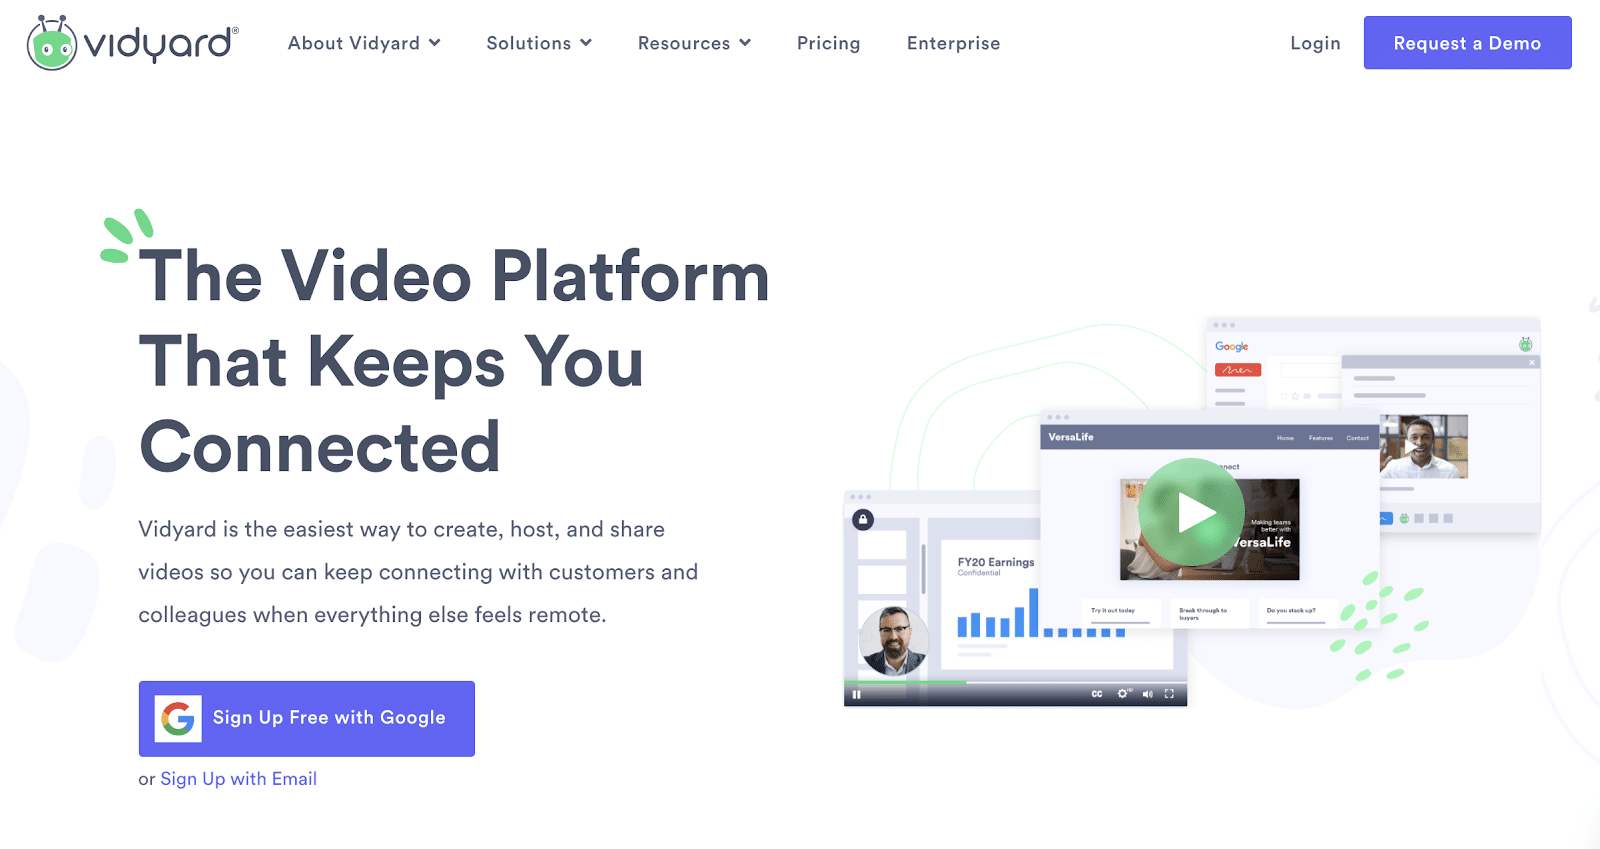 vidyard is for companies looking to put together personalized video